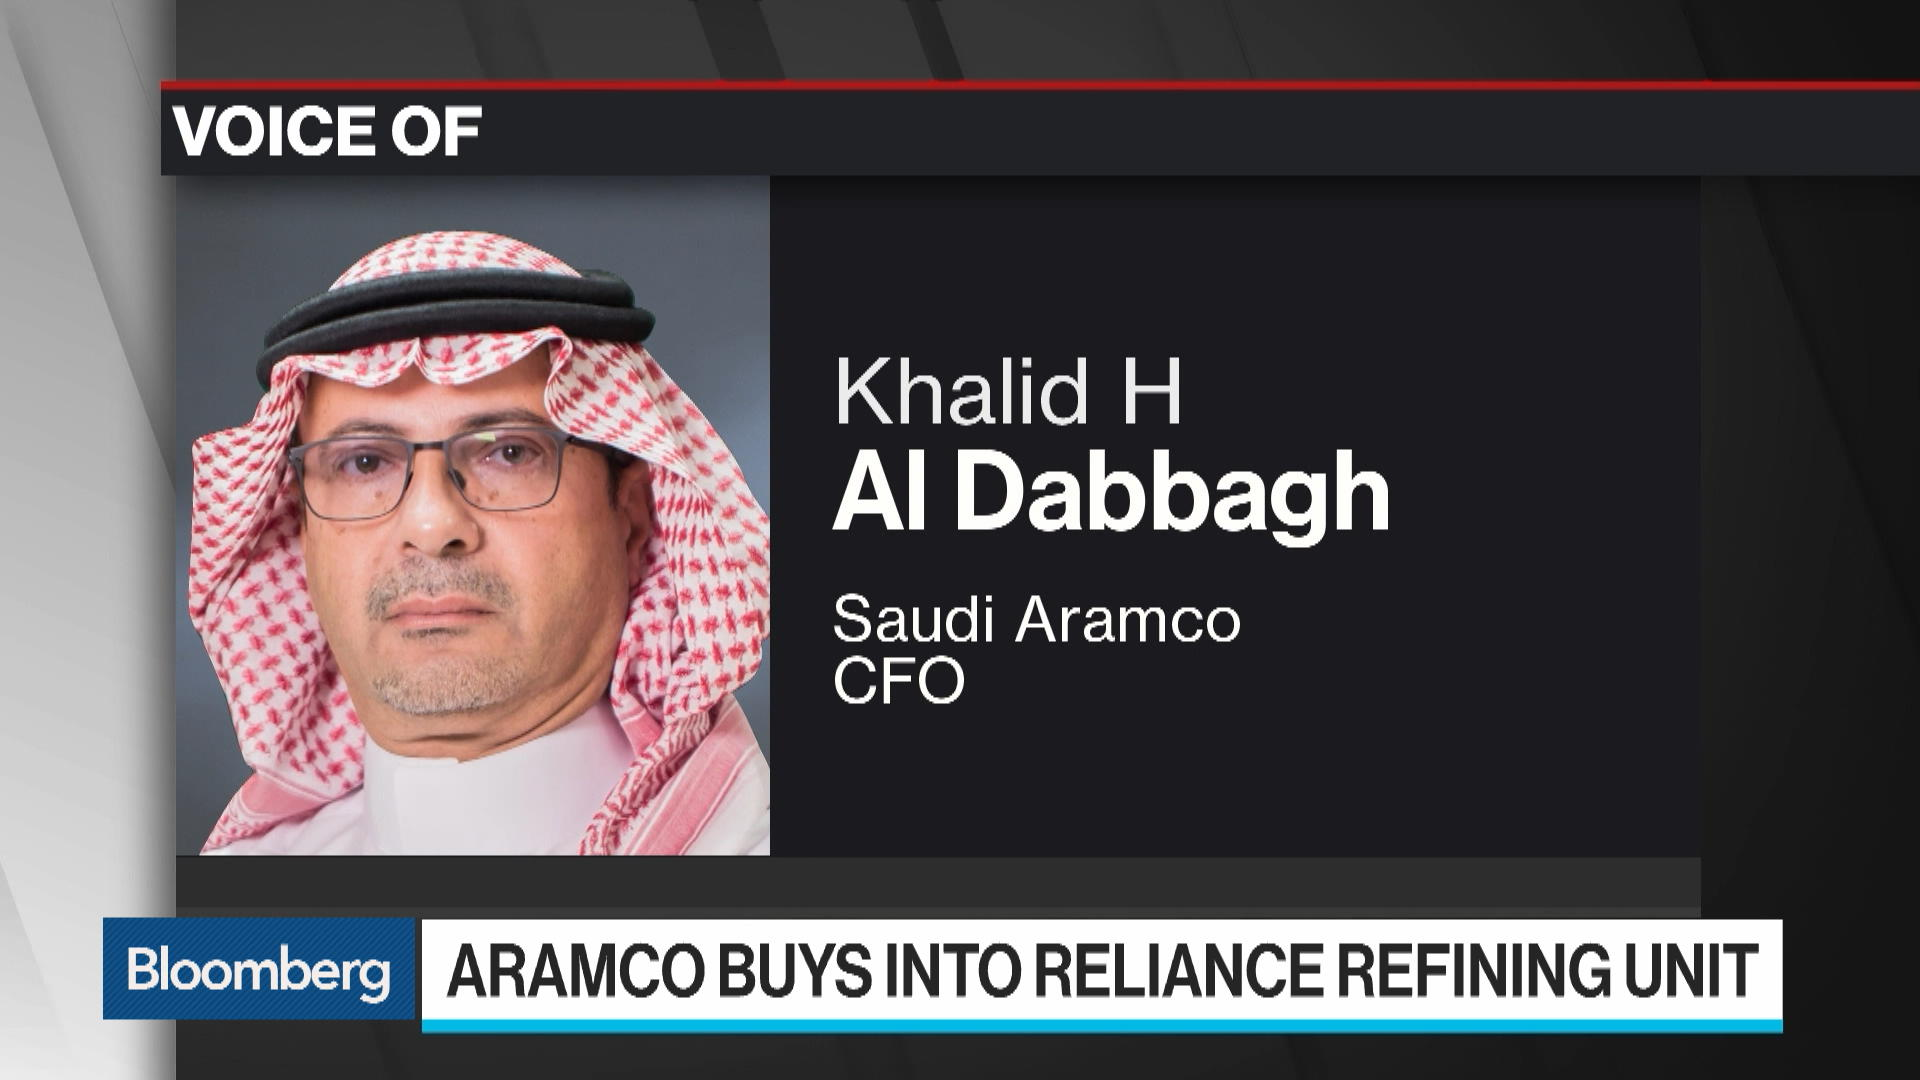 Aramco Plans to Buy Reliance Refining Stake as Earnings Drop